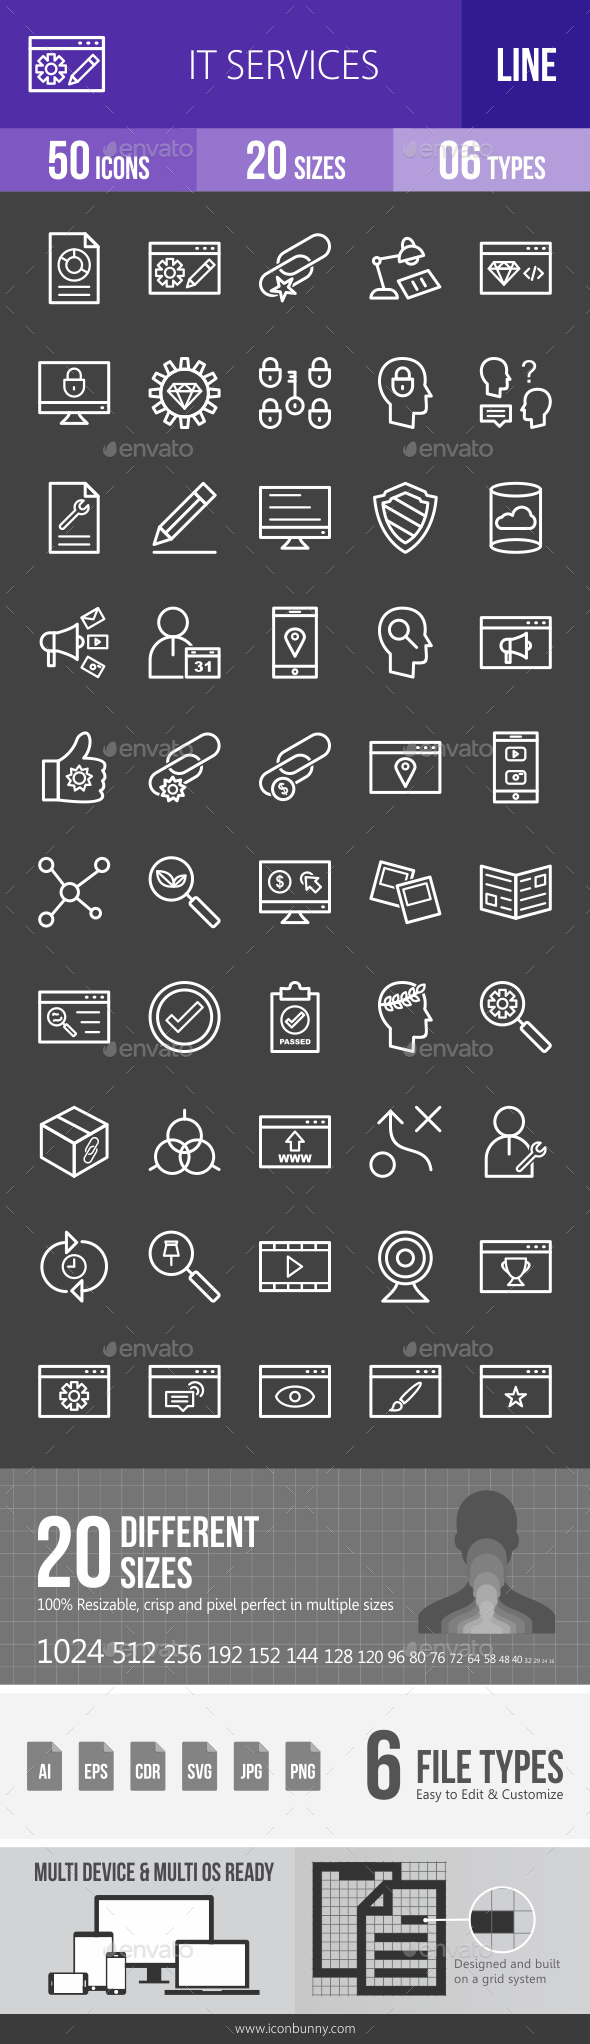 IT Services Line Inverted Icons - Icons